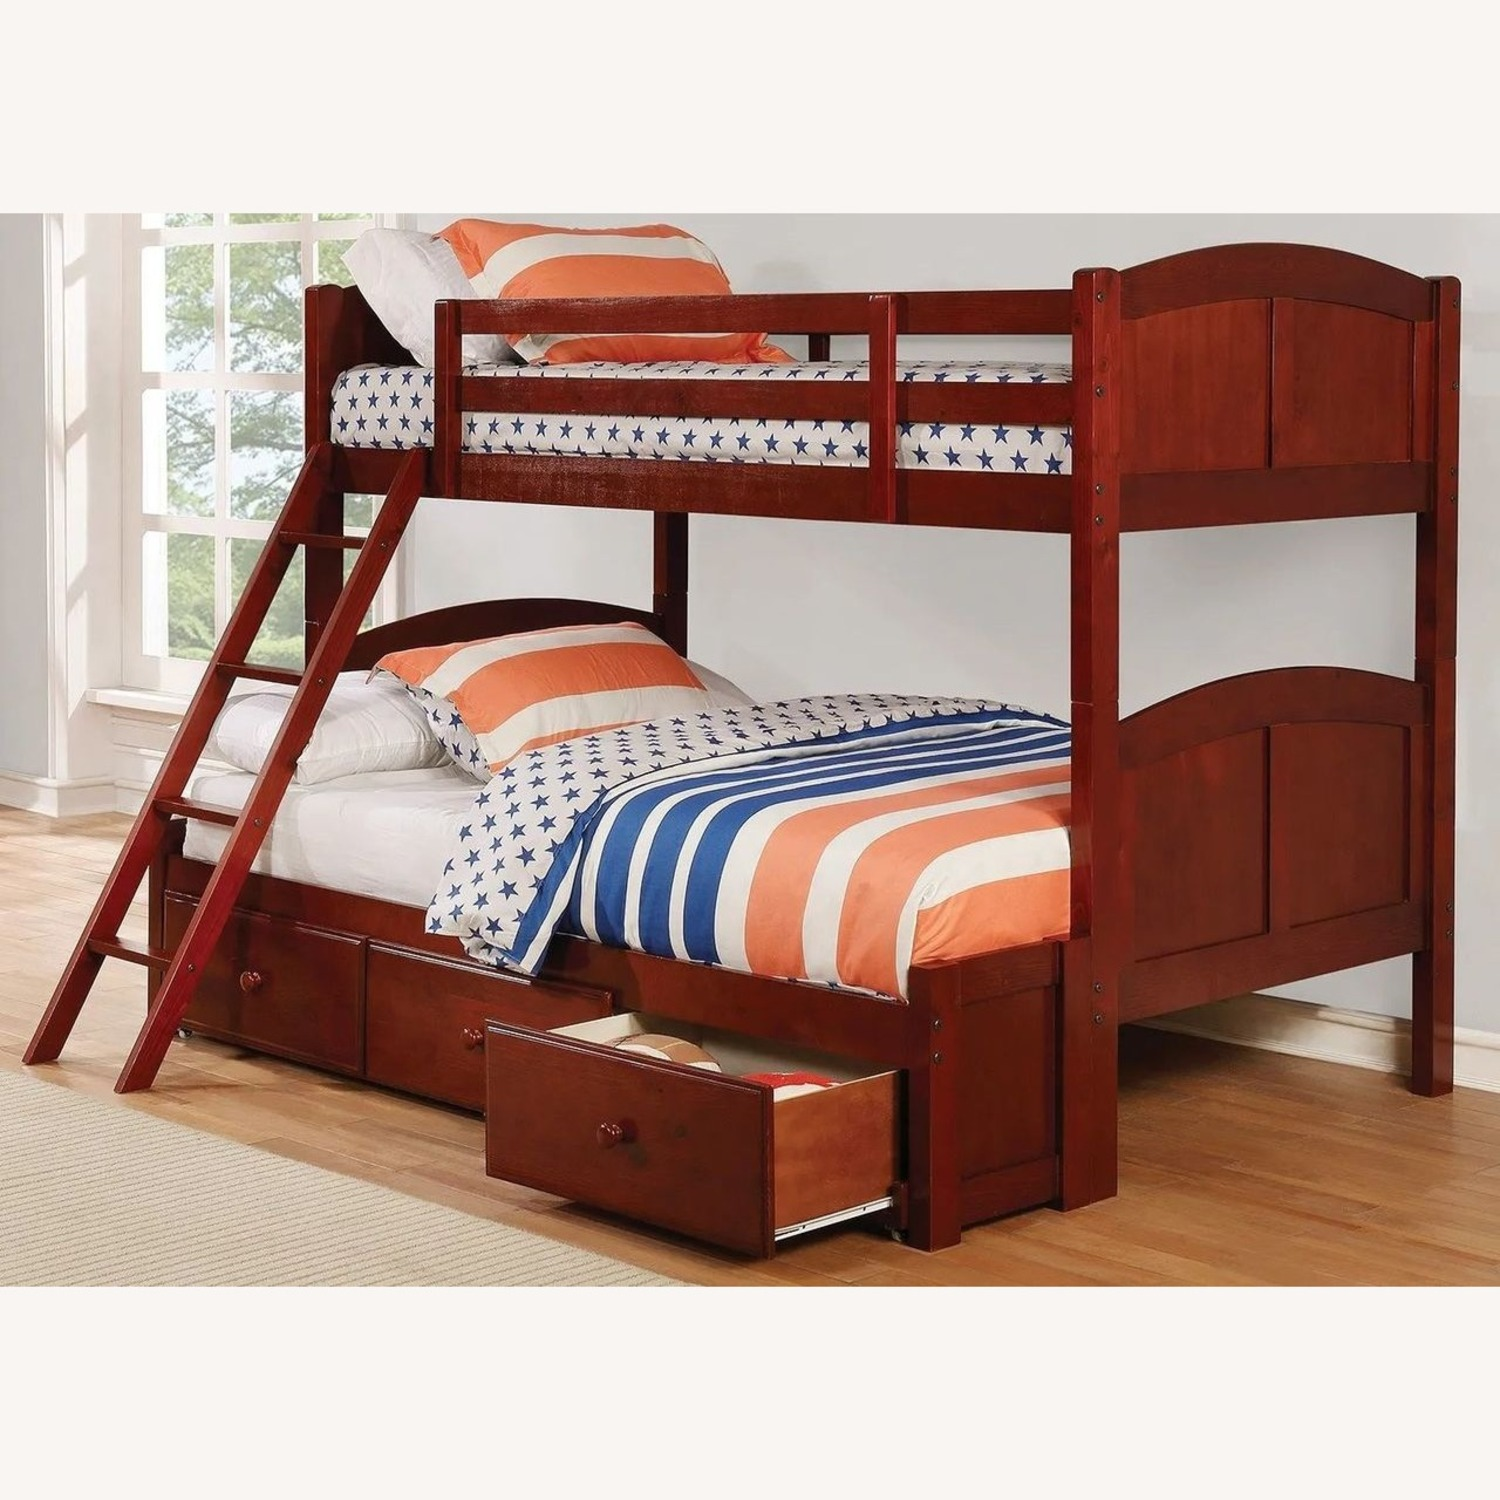 Twin Over Full Bunk Bed In Warm Chestnut Finish - image-2